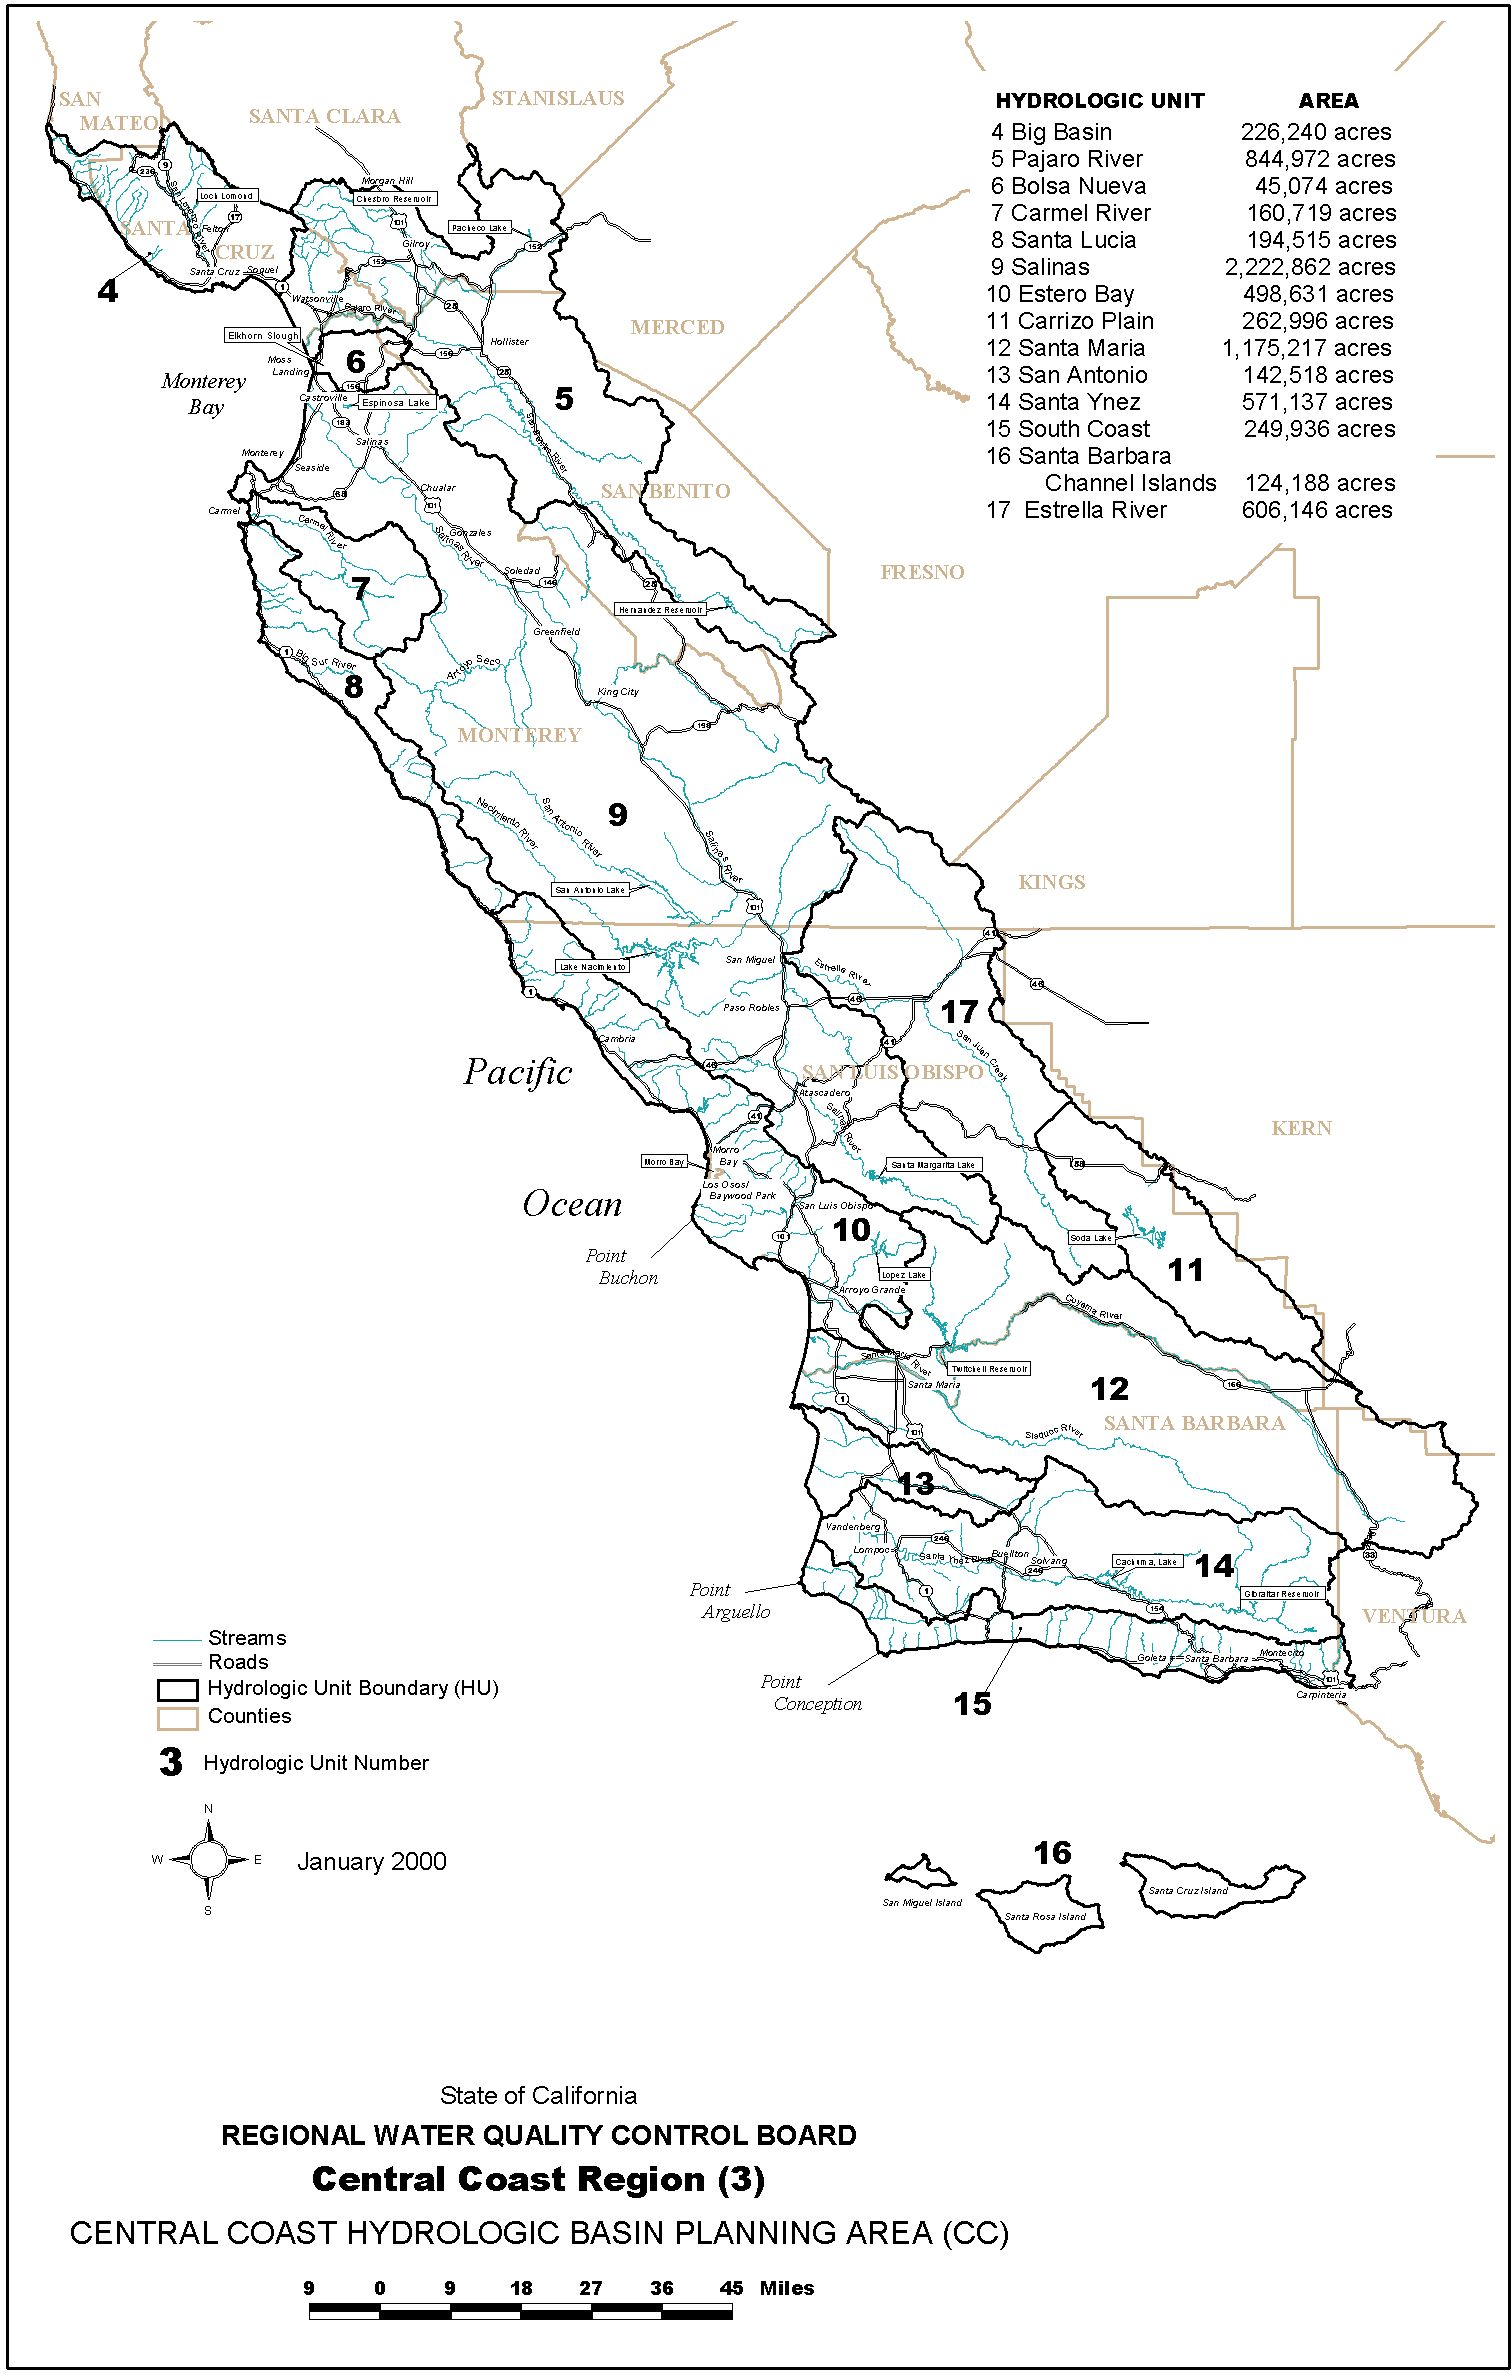 assessment of coastal water resources and watershed conditions at Moon Phase Calendar 2013 waterboards ca gov centralcoast images reg3map 001